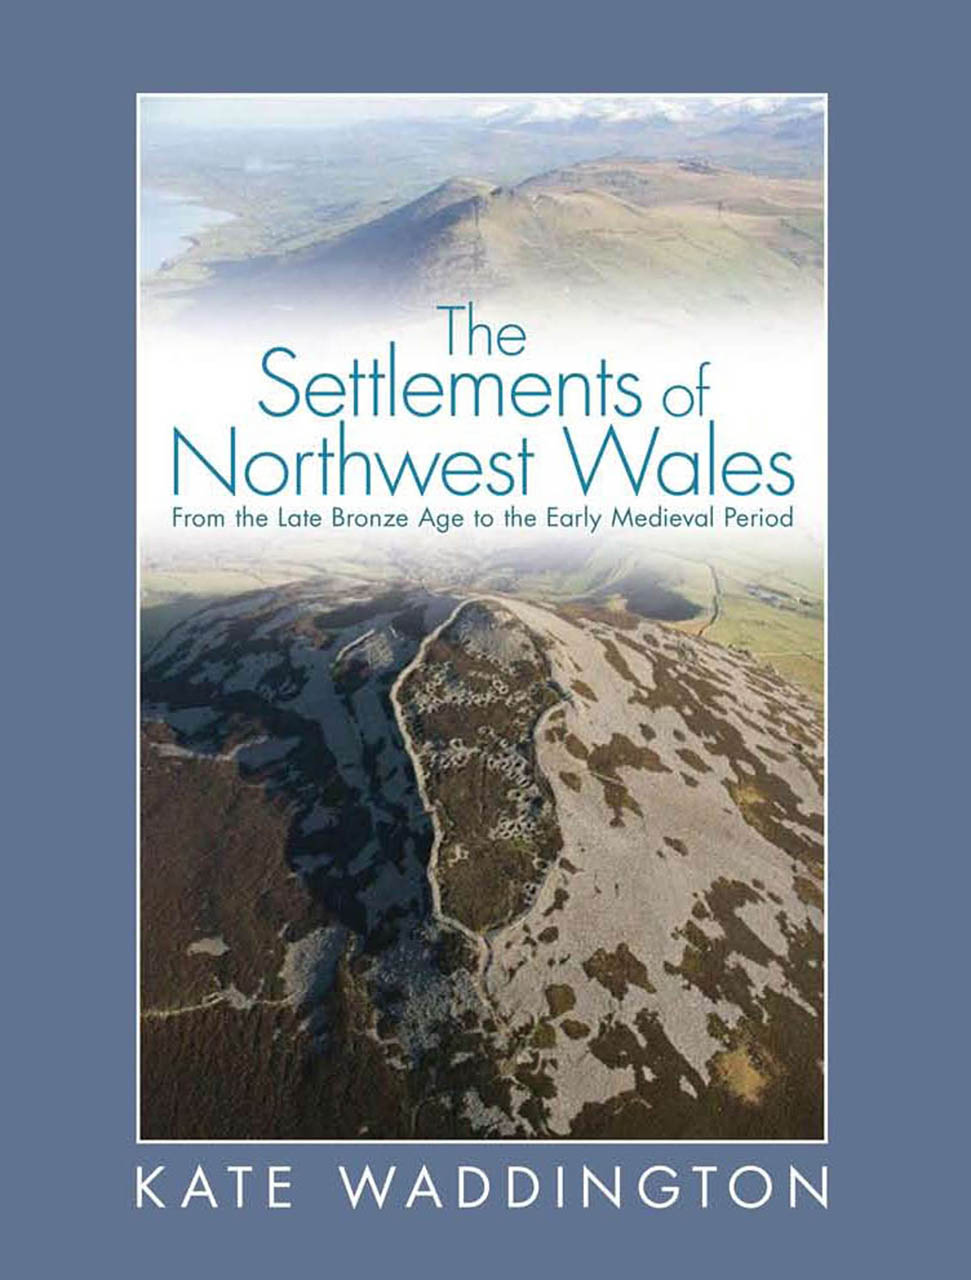 The Settlements of Northwest Wales: From the Late Bronze Age to the Early Medieval Period